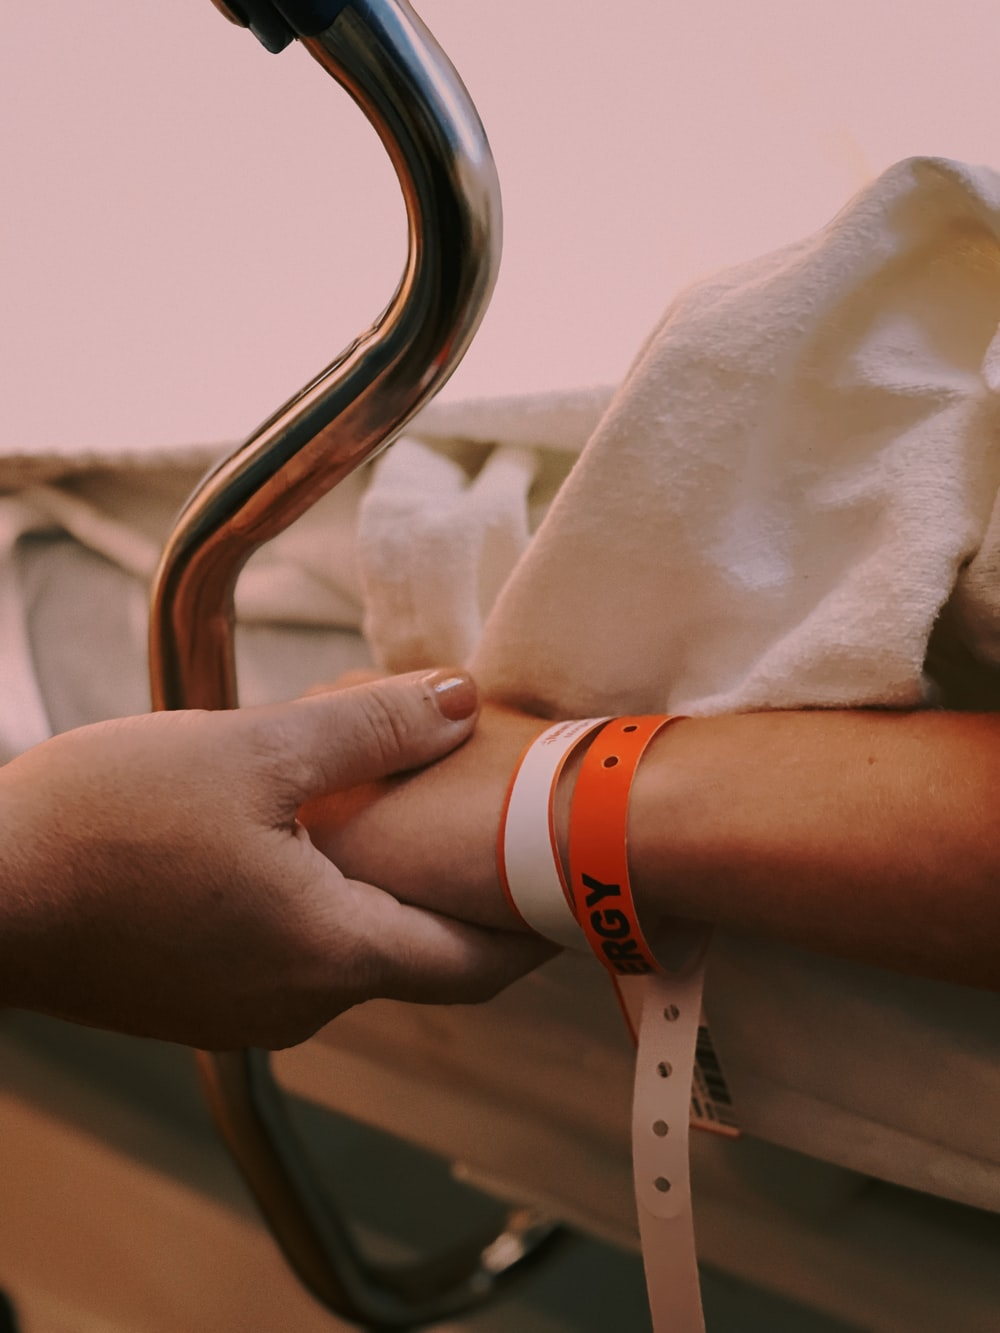 person wearing orange and white silicone band